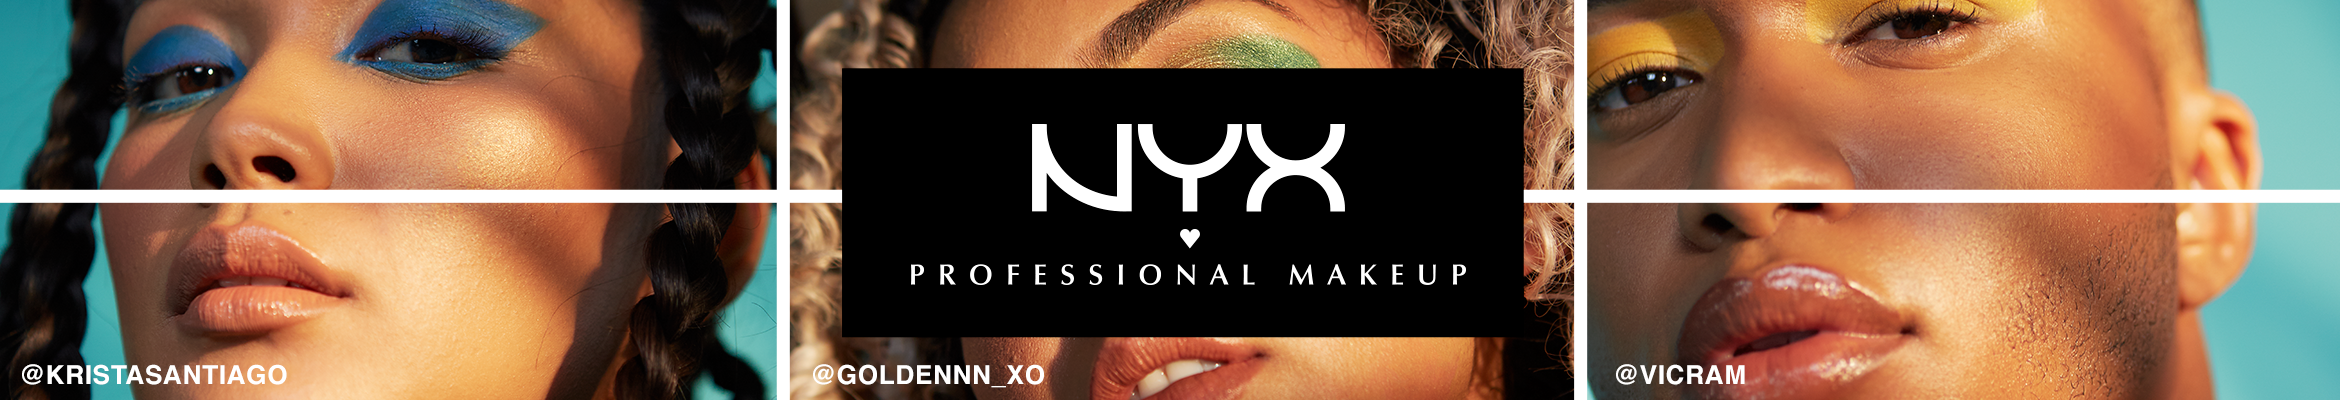 NYXPM_DK_Bootz_nyheder_banner_2340x700